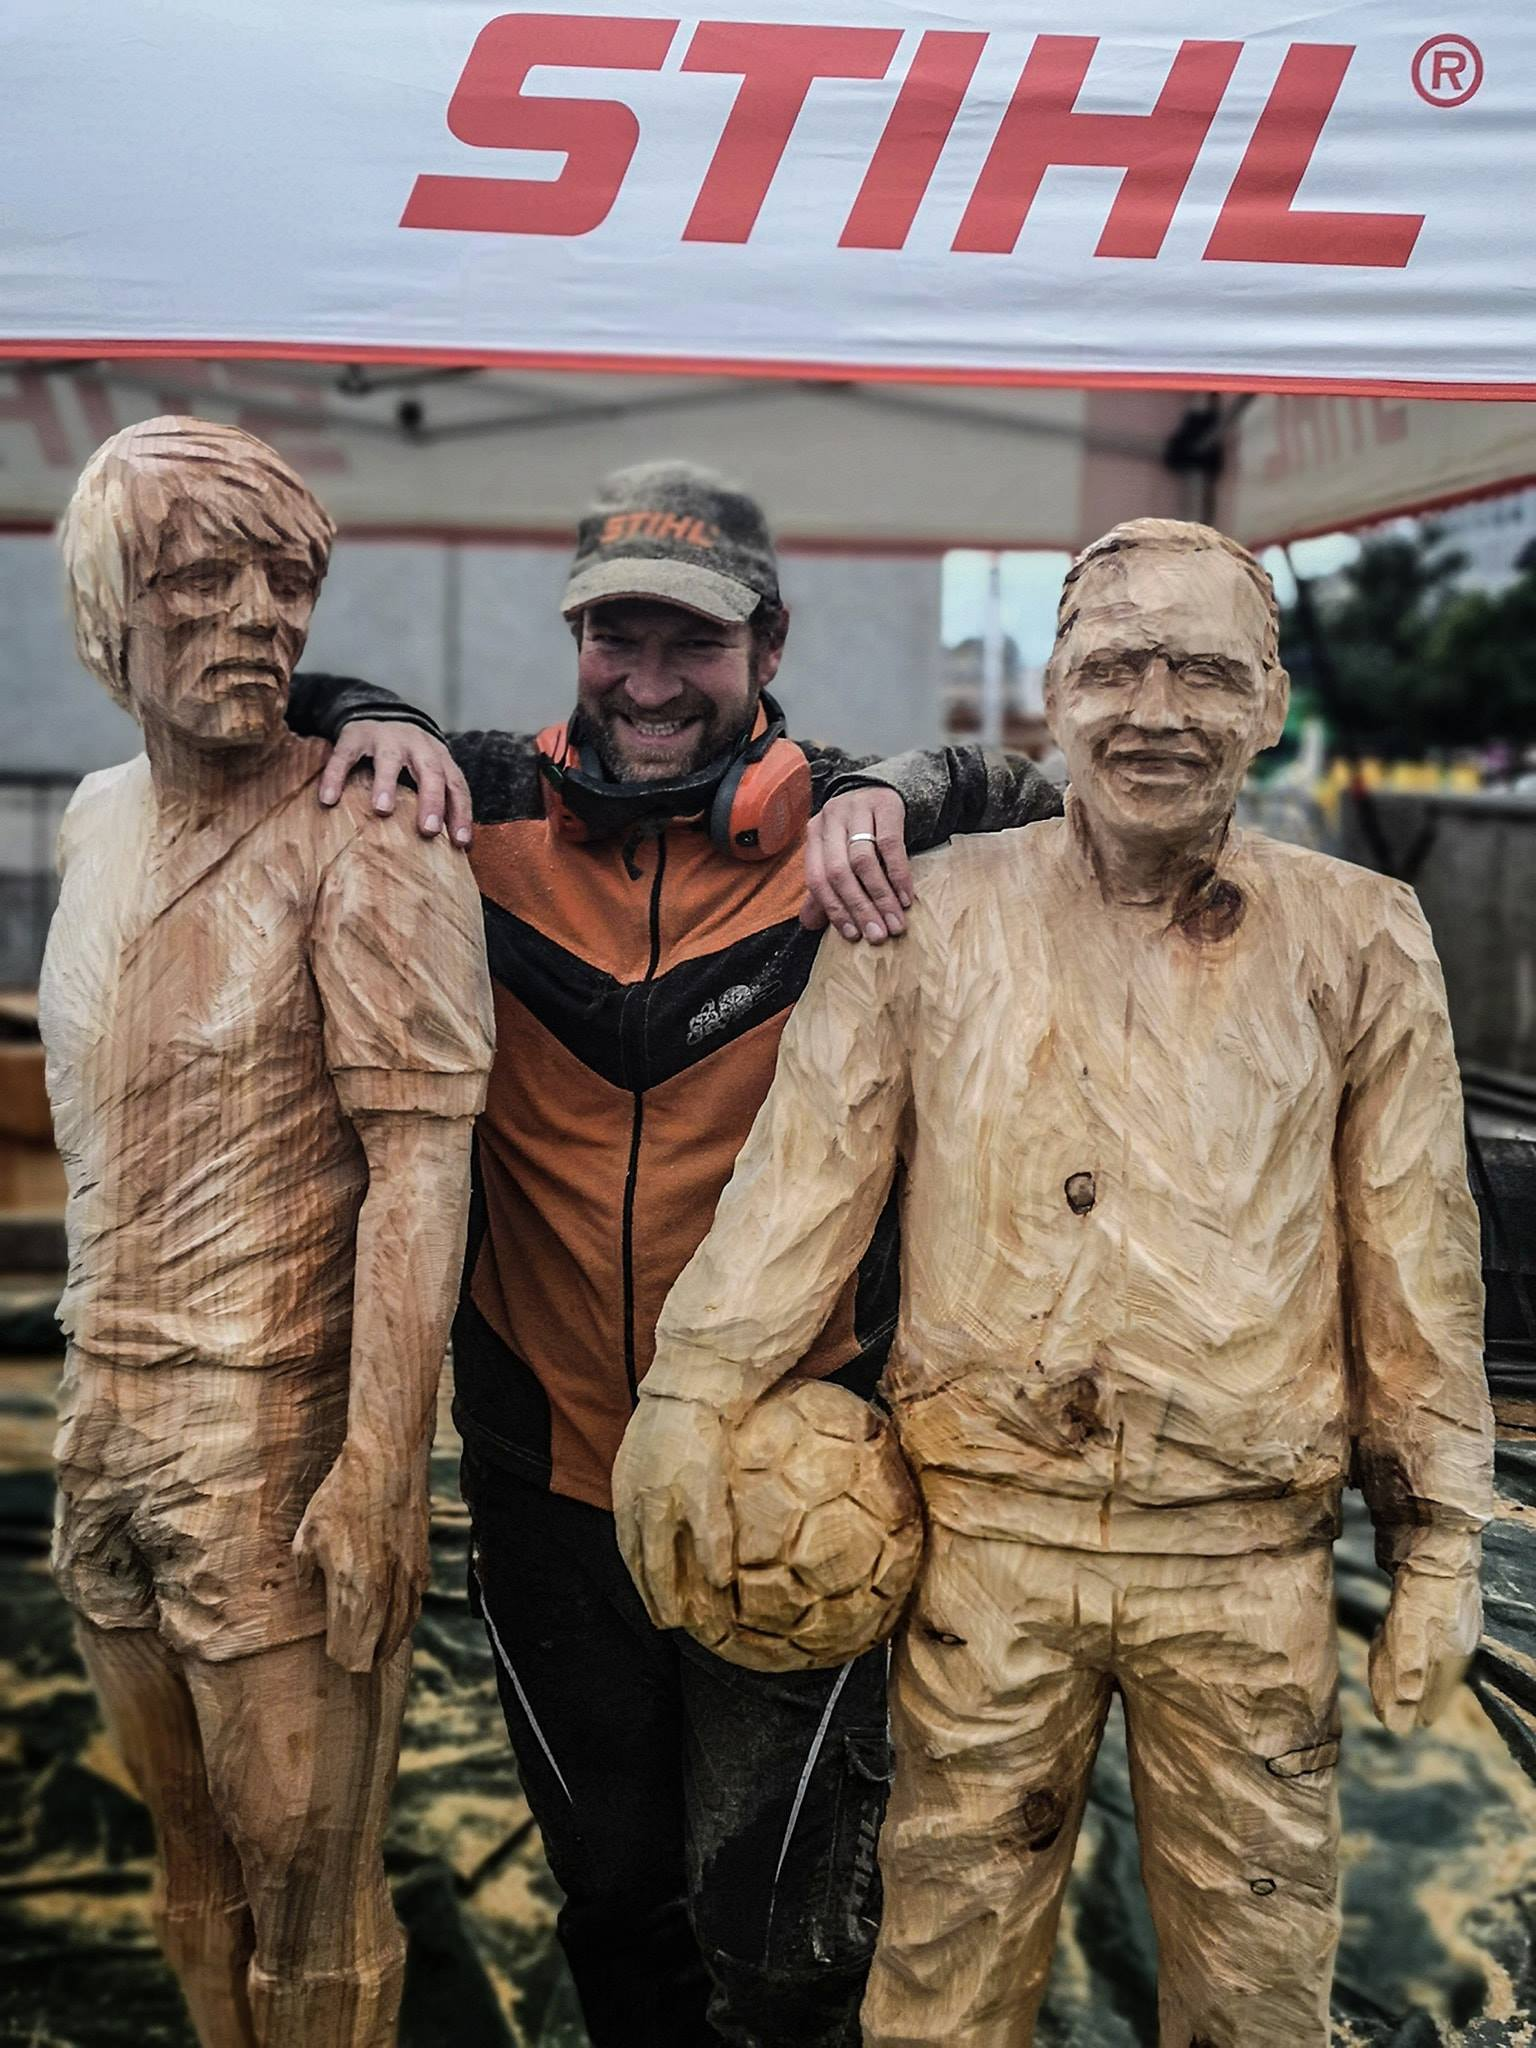 chainsaw artist simon o'rourke stands between life size wood sculptures of Bill Shankly and Kenny Dalglish, two of many sporting sculptures made by simon